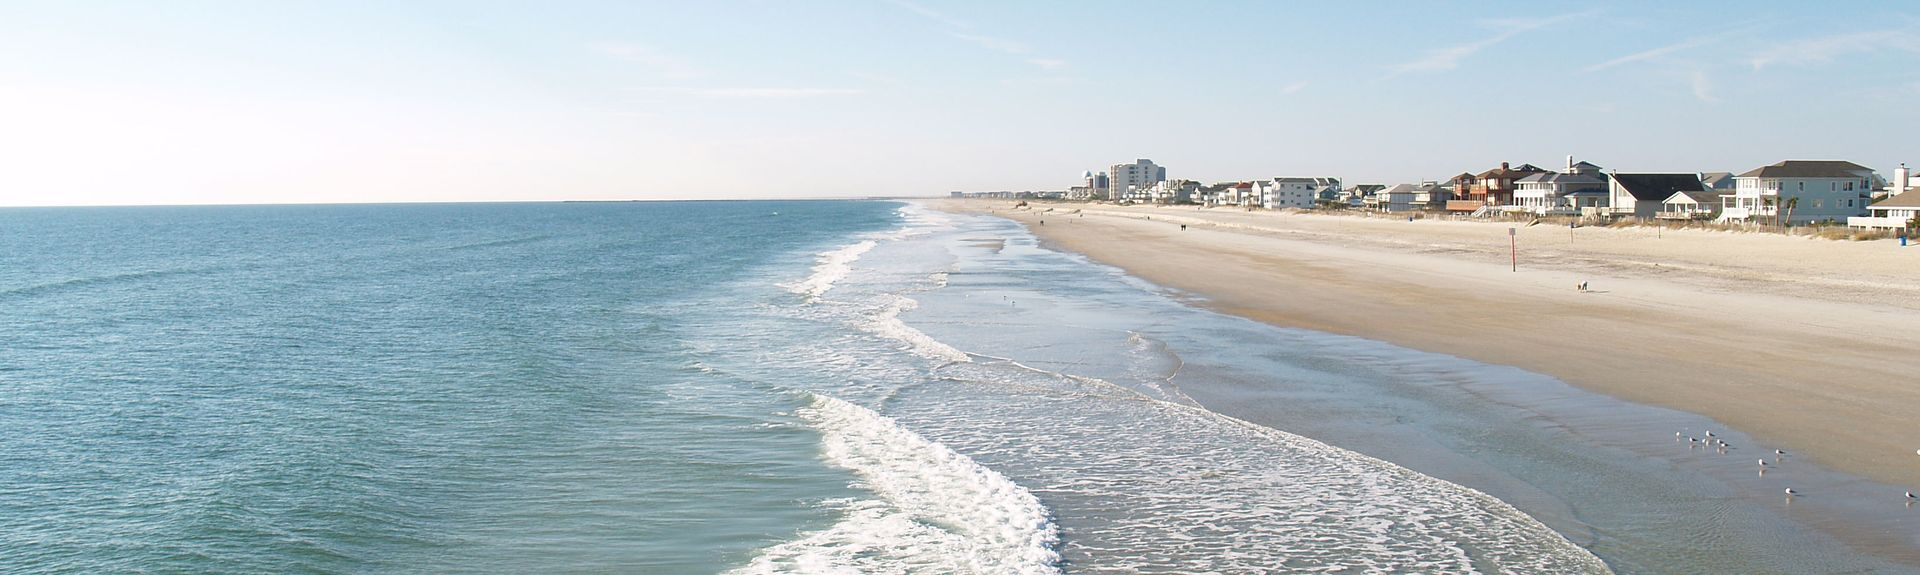 Johnnie Mercer's Pier, Wrightsville Beach, North Carolina, United States of America